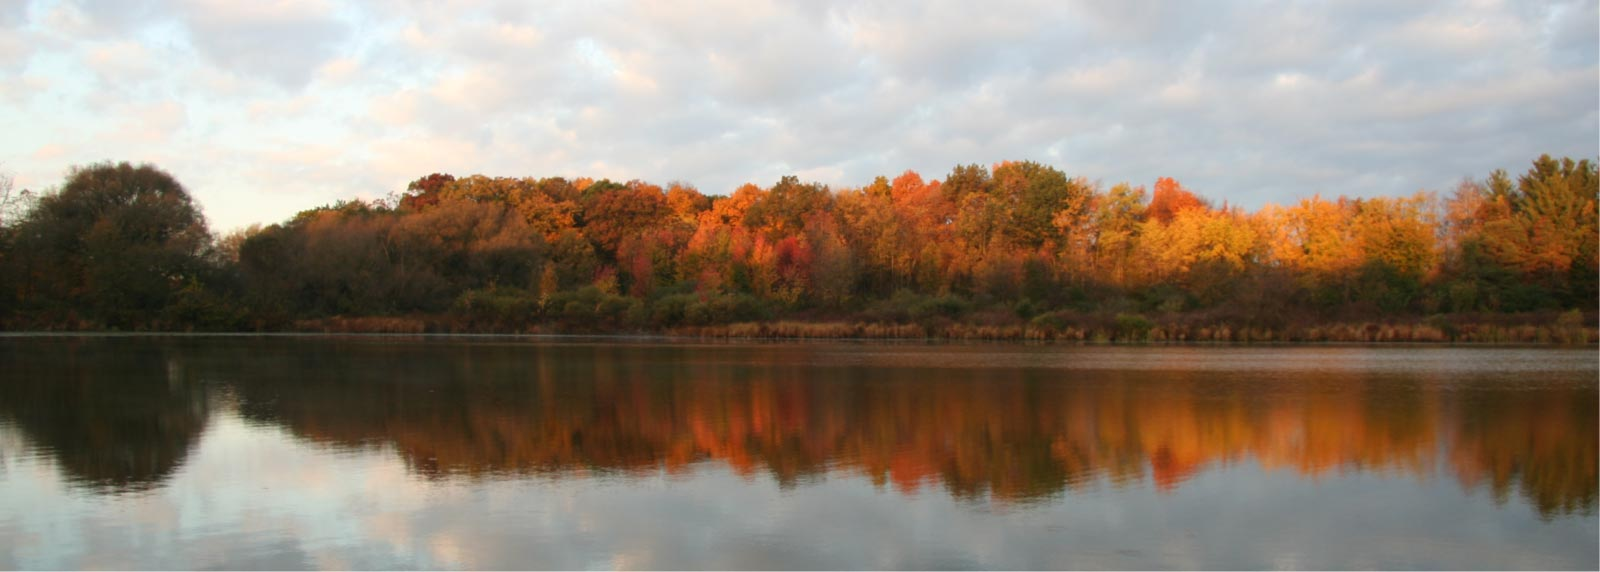 Camp Woodbury view of forest from lake in the Fall